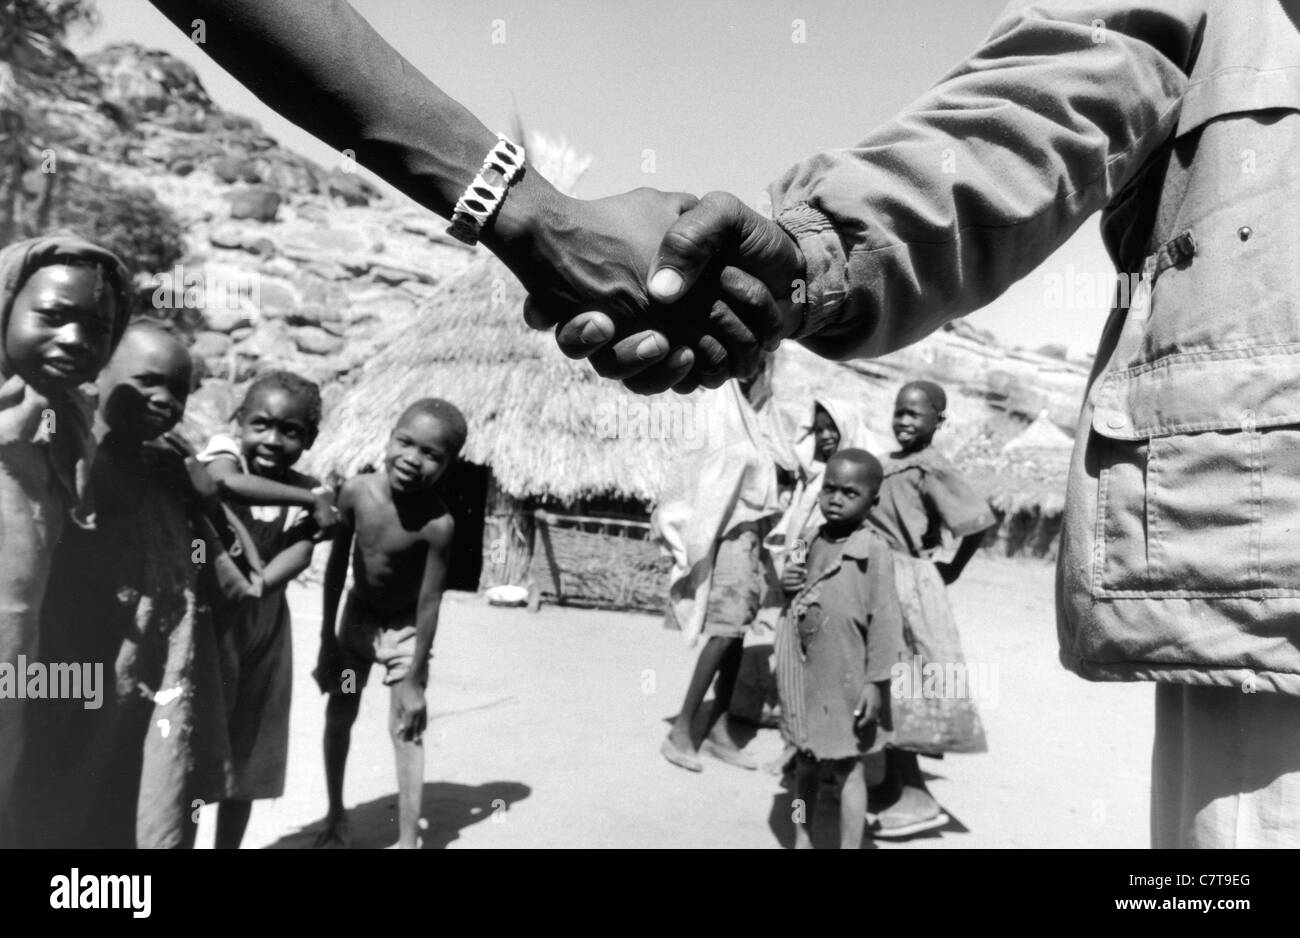 Sudan, Kordofan, hand shaking between soldier and locals - Stock Image